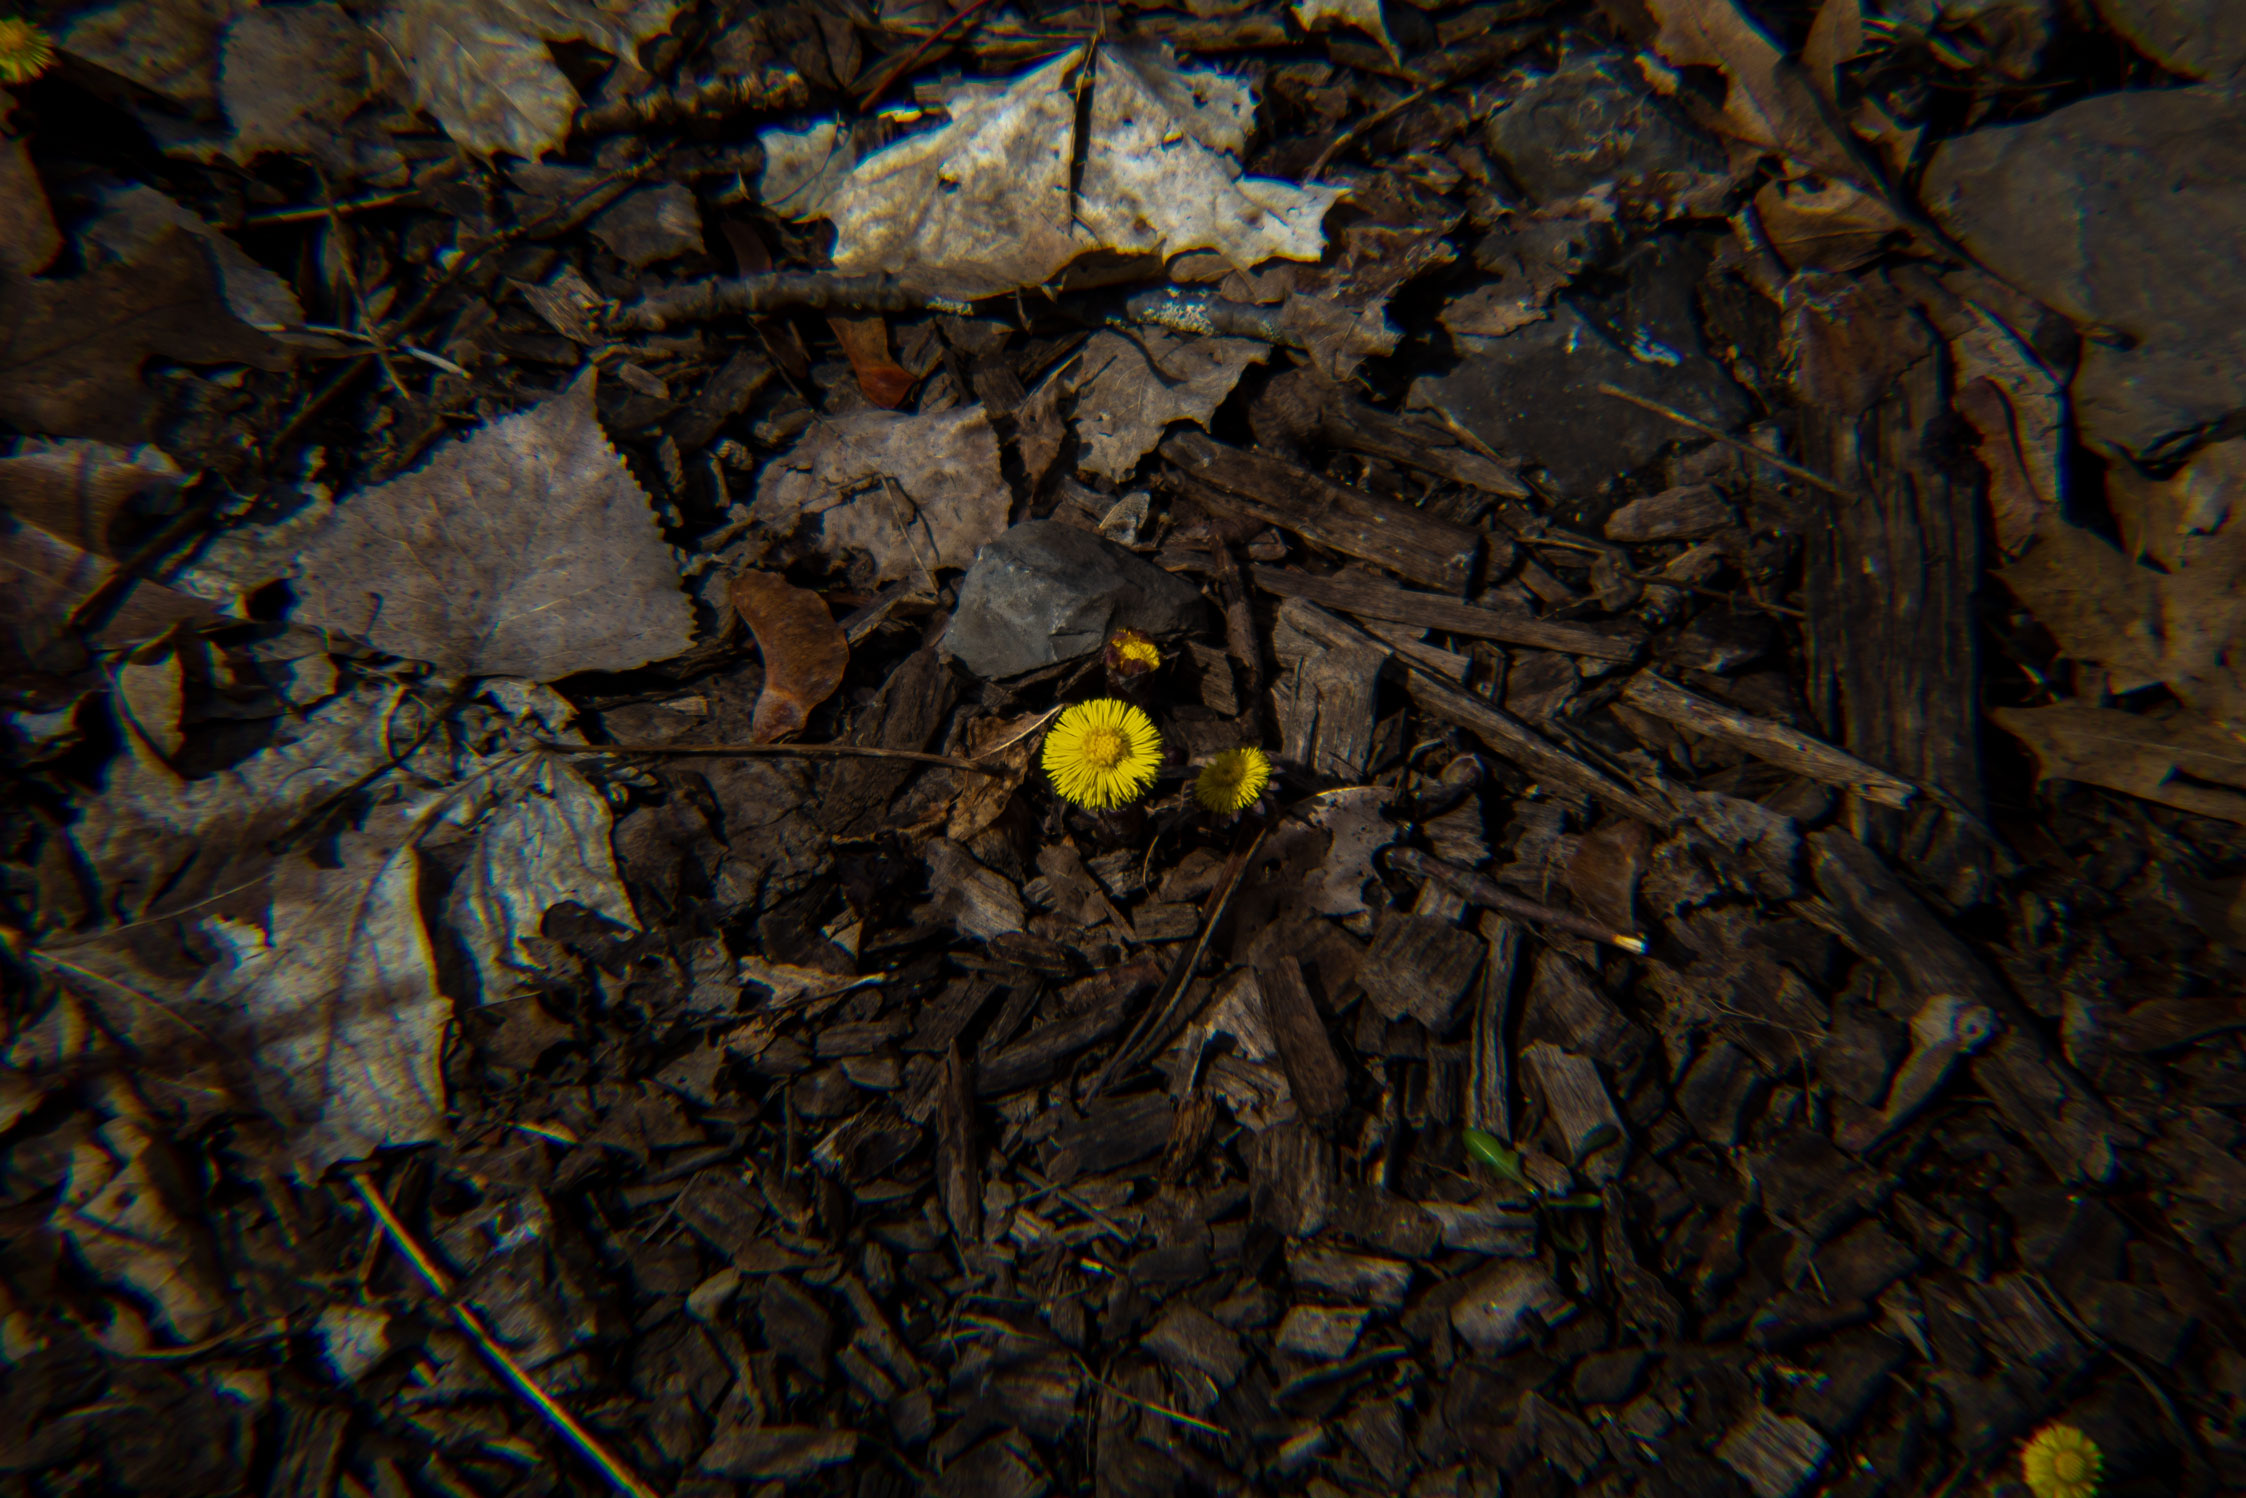 Small yellow flower on a dark dirt background